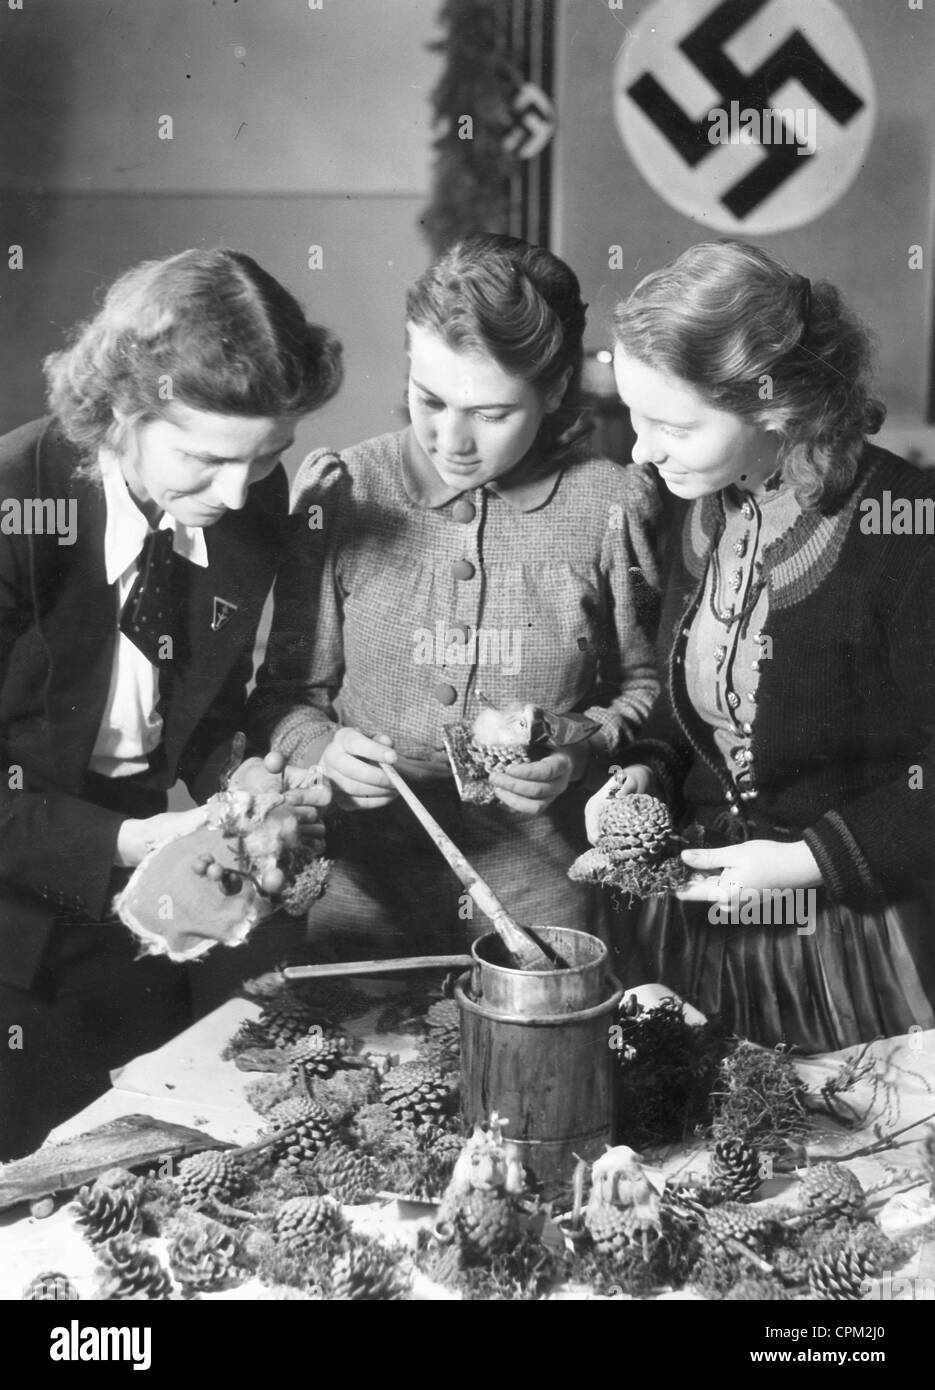 Handicraft course for Christmas decorations, 1941 - Stock Image